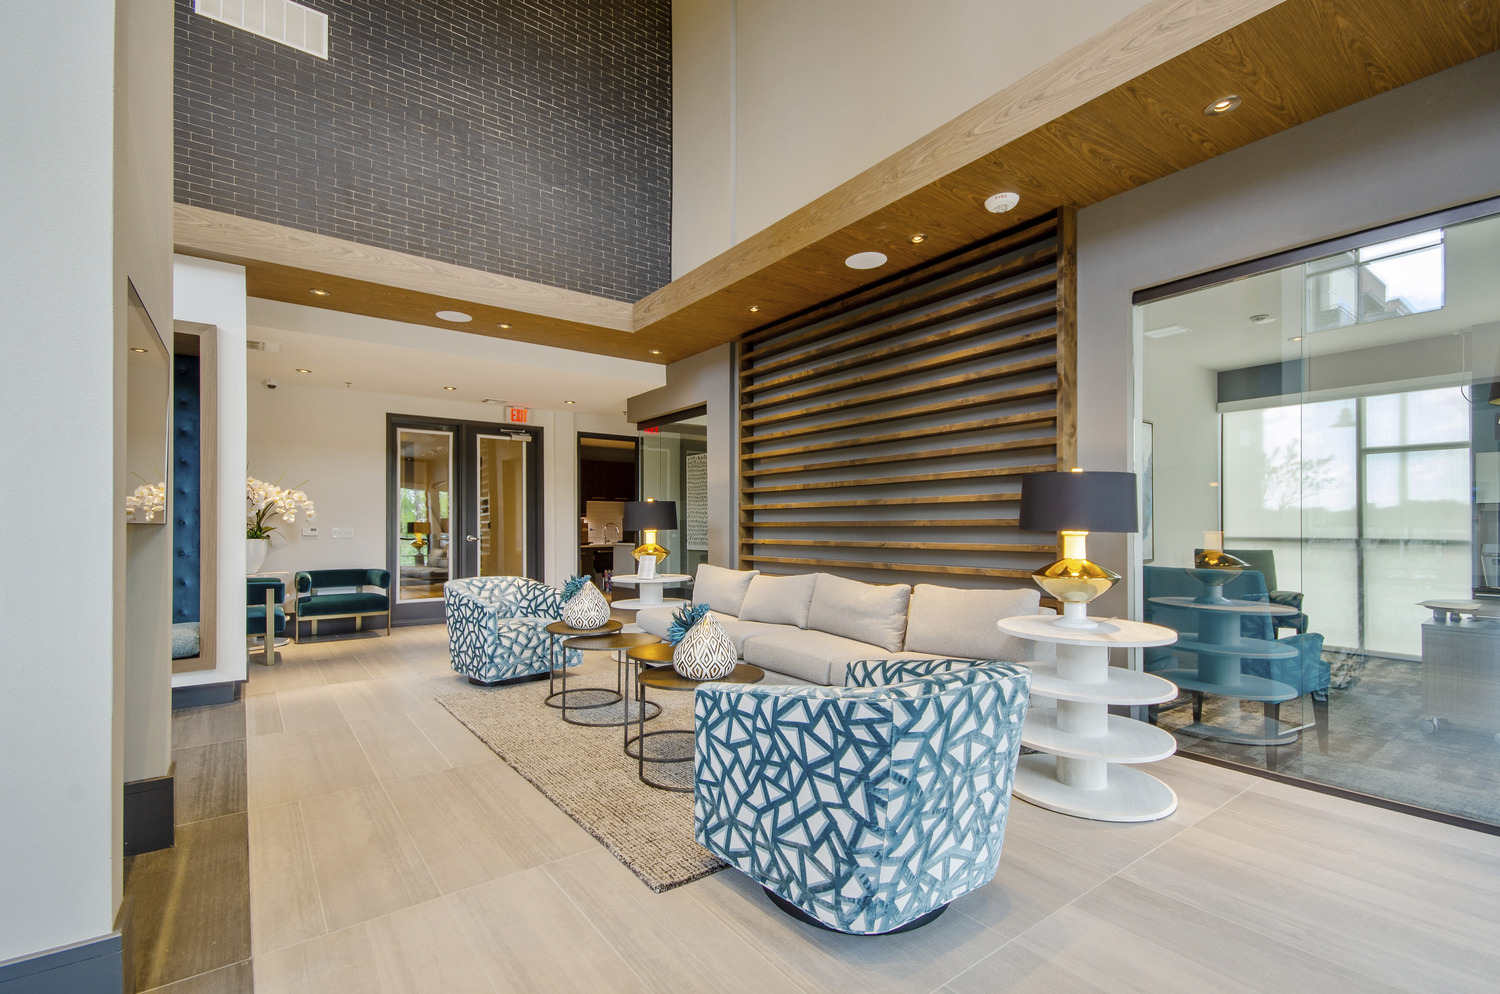 CBG builds Domain at the One Forty, a 10-Building Garden-Style Community with Amenities in Garland, TX - Image #7